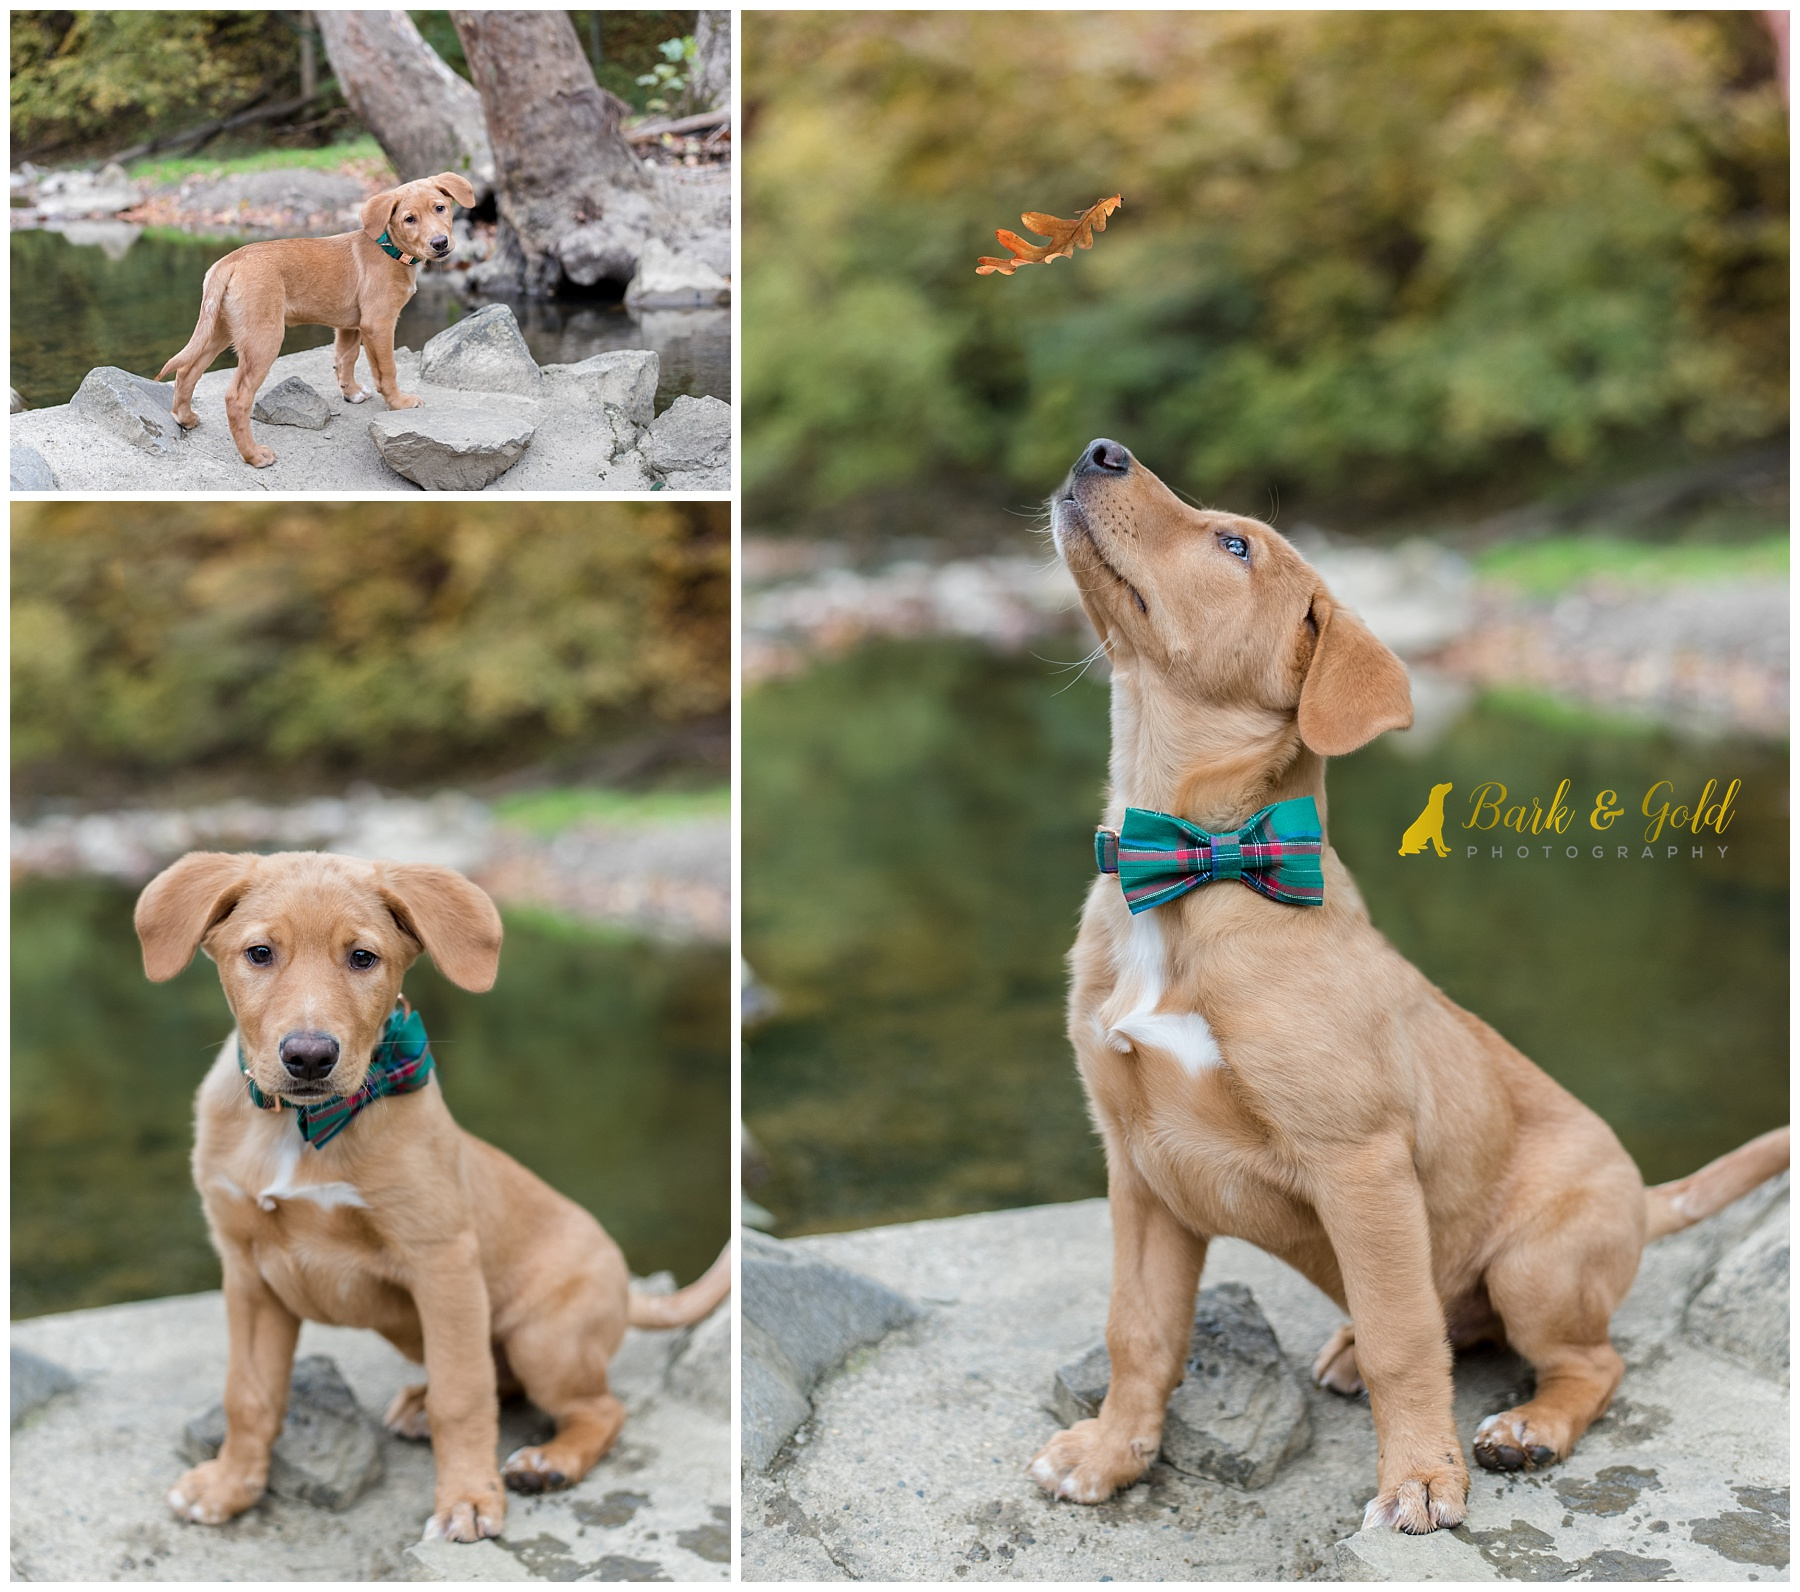 Brown puppy at Mingo Creek Park posing by water